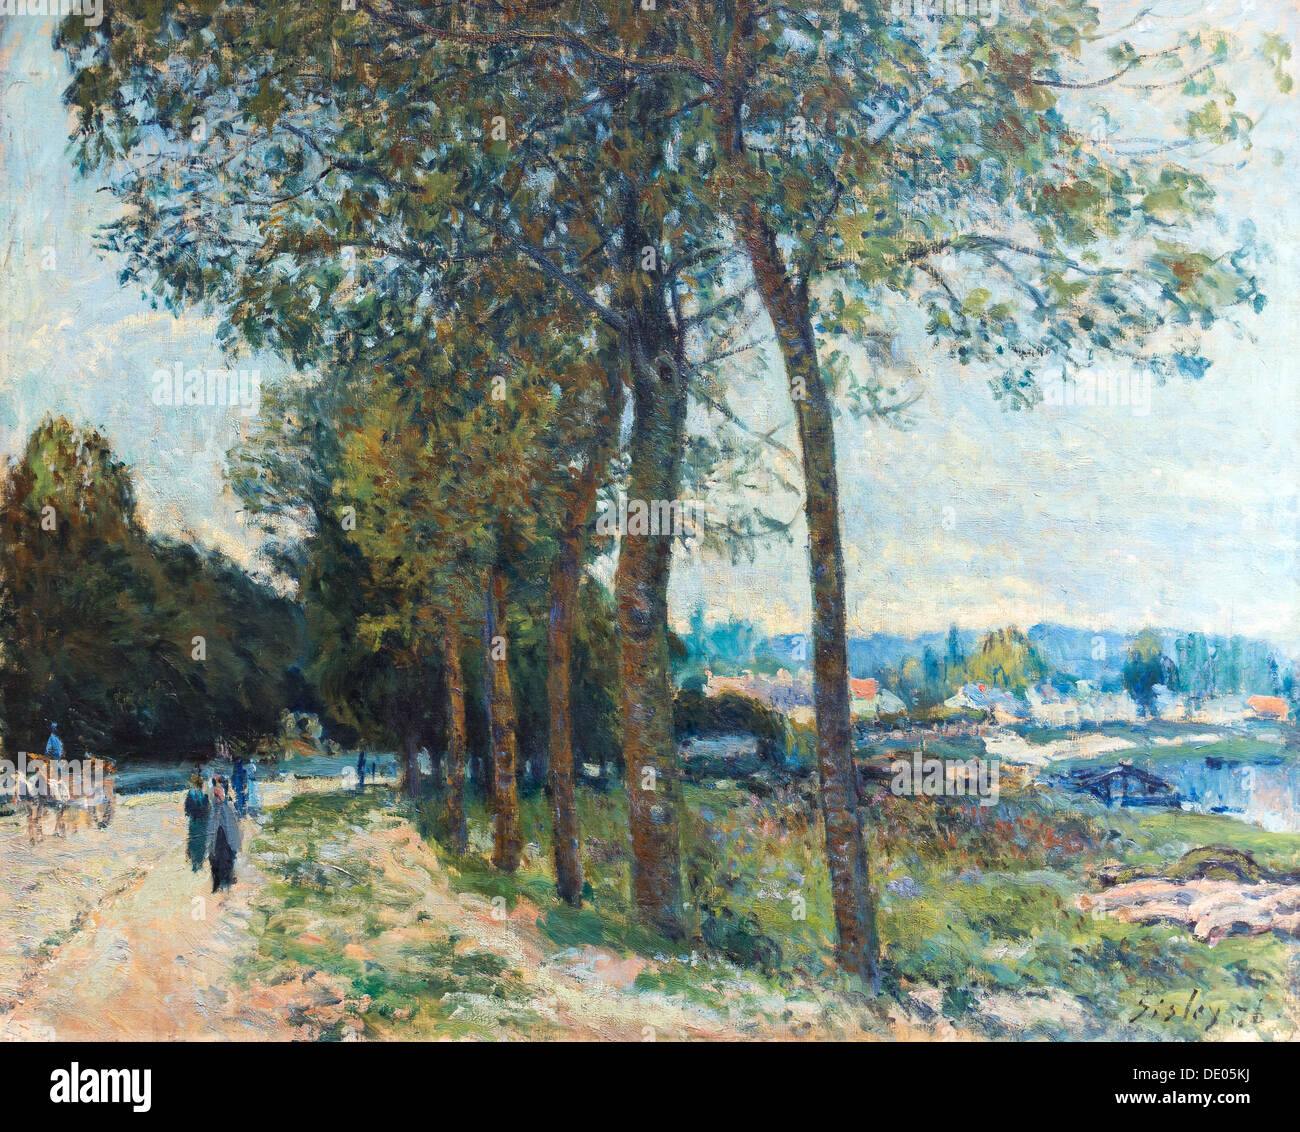 19th century  -  The Seine at Marly, 1876 - Alfred Sisley Philippe Sauvan-Magnet / Active Museum oil on canvas - Stock Image